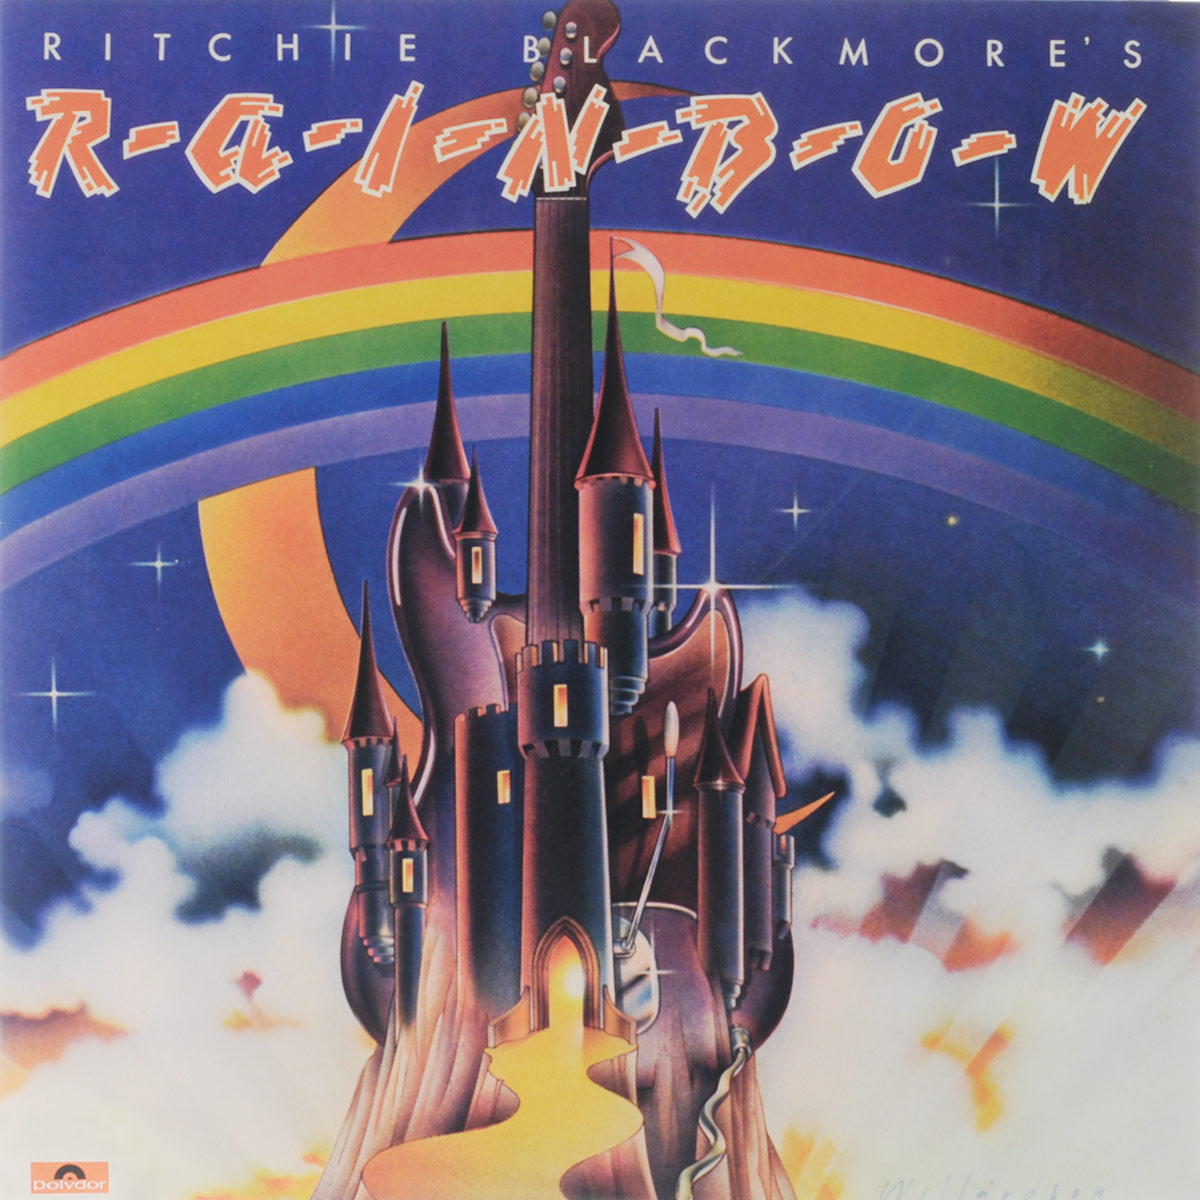 Rainbow Rainbow. Ritchie Blackmore's Rainbow (LP) погремушка rainbow